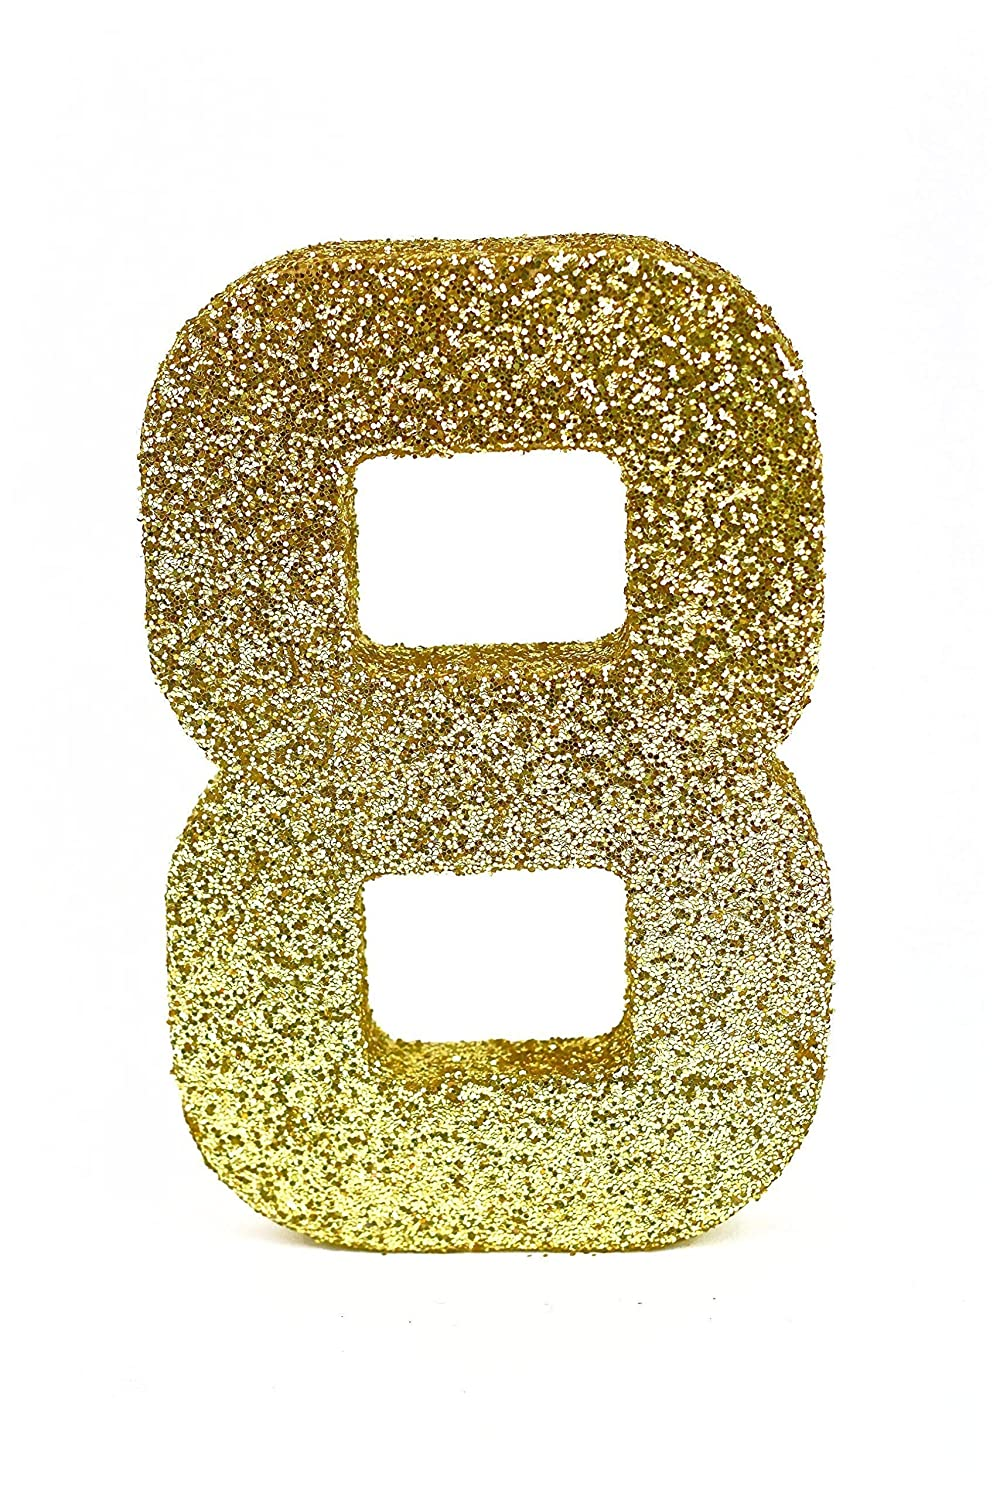 8 in Numbers photo prop-Gold Glitter Number 5-Numbers 8 inches-Birthday Photo Prop Decoration-Birthday Number-Glitter Number 1 Photo Prop